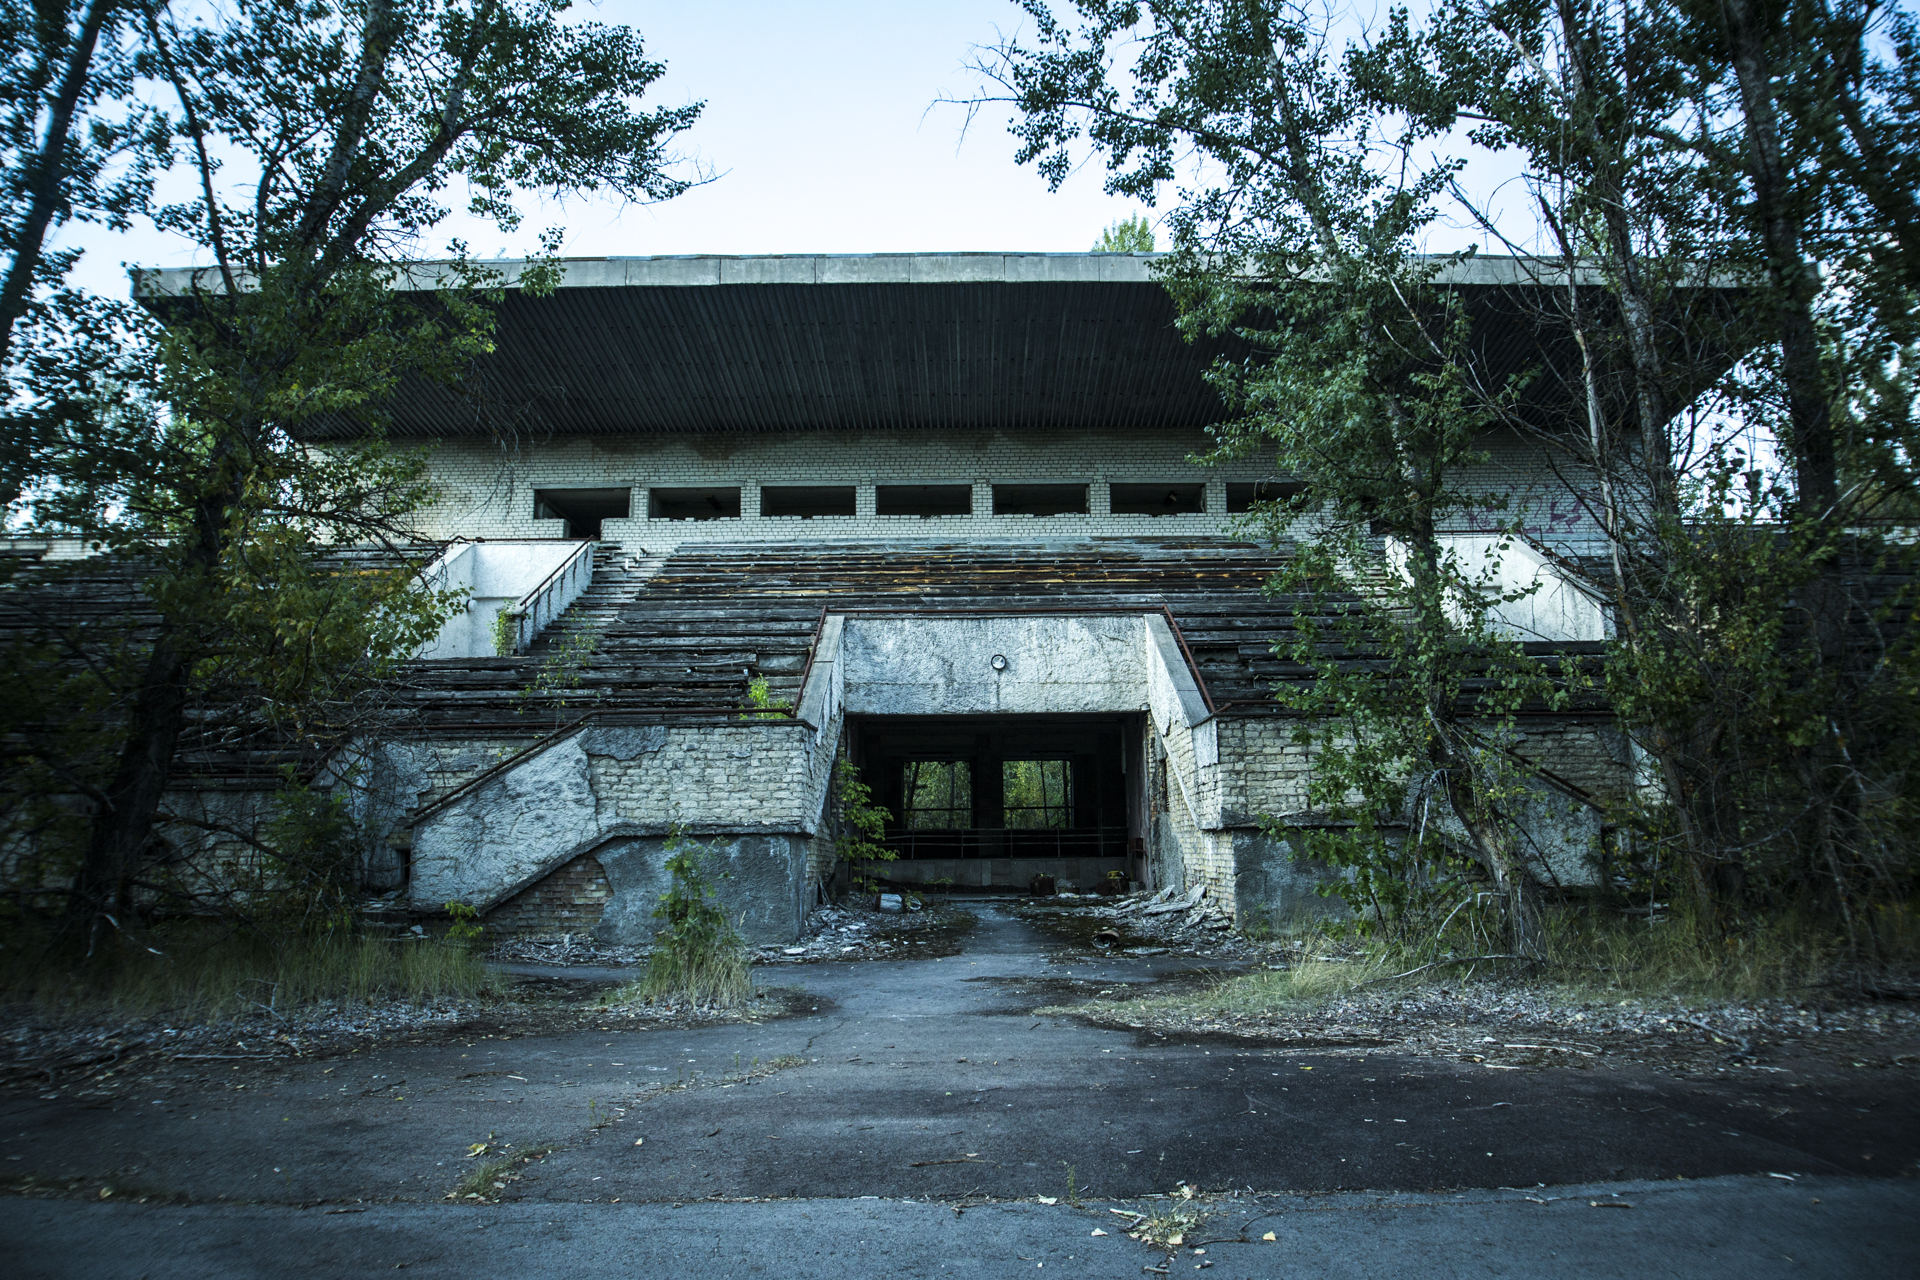 The stadium in Pripyat was one of several attractions that never reached completion before disaster struck.